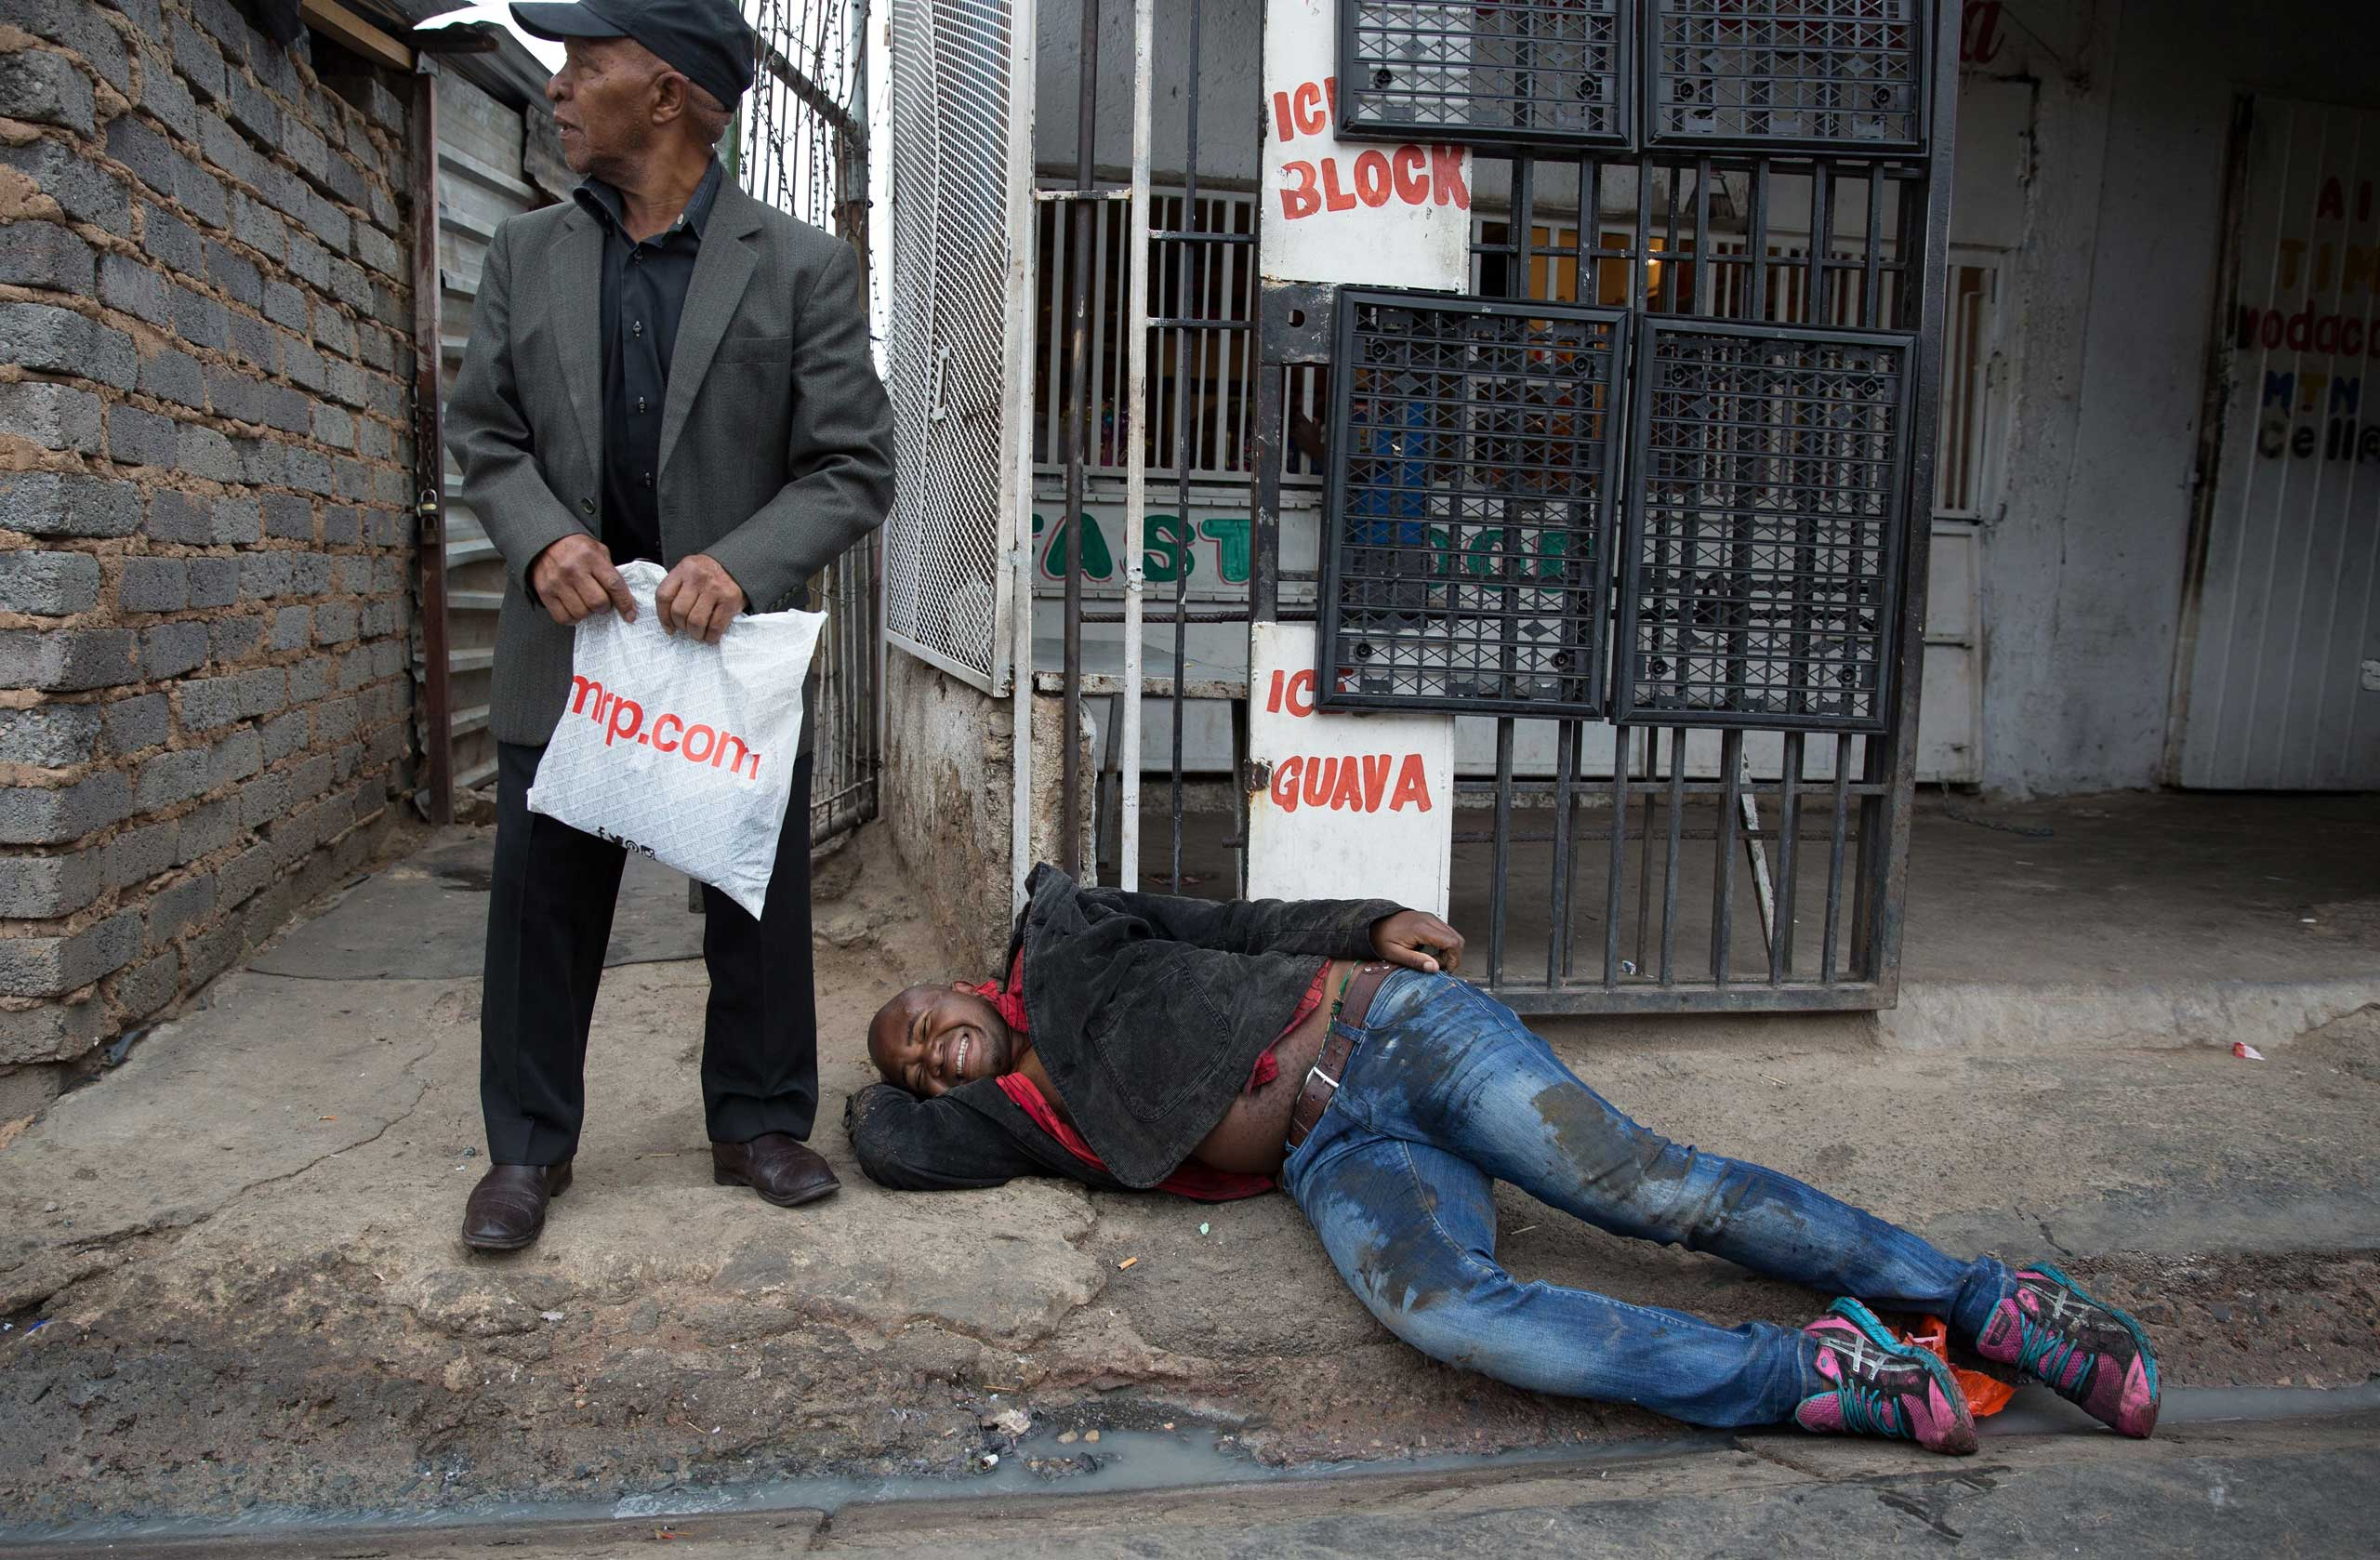 Sithole after being attacked by men in Alexandra township during anti-immigrant violence in Johannesburg on April 18, 2015. He later died of his injuries.